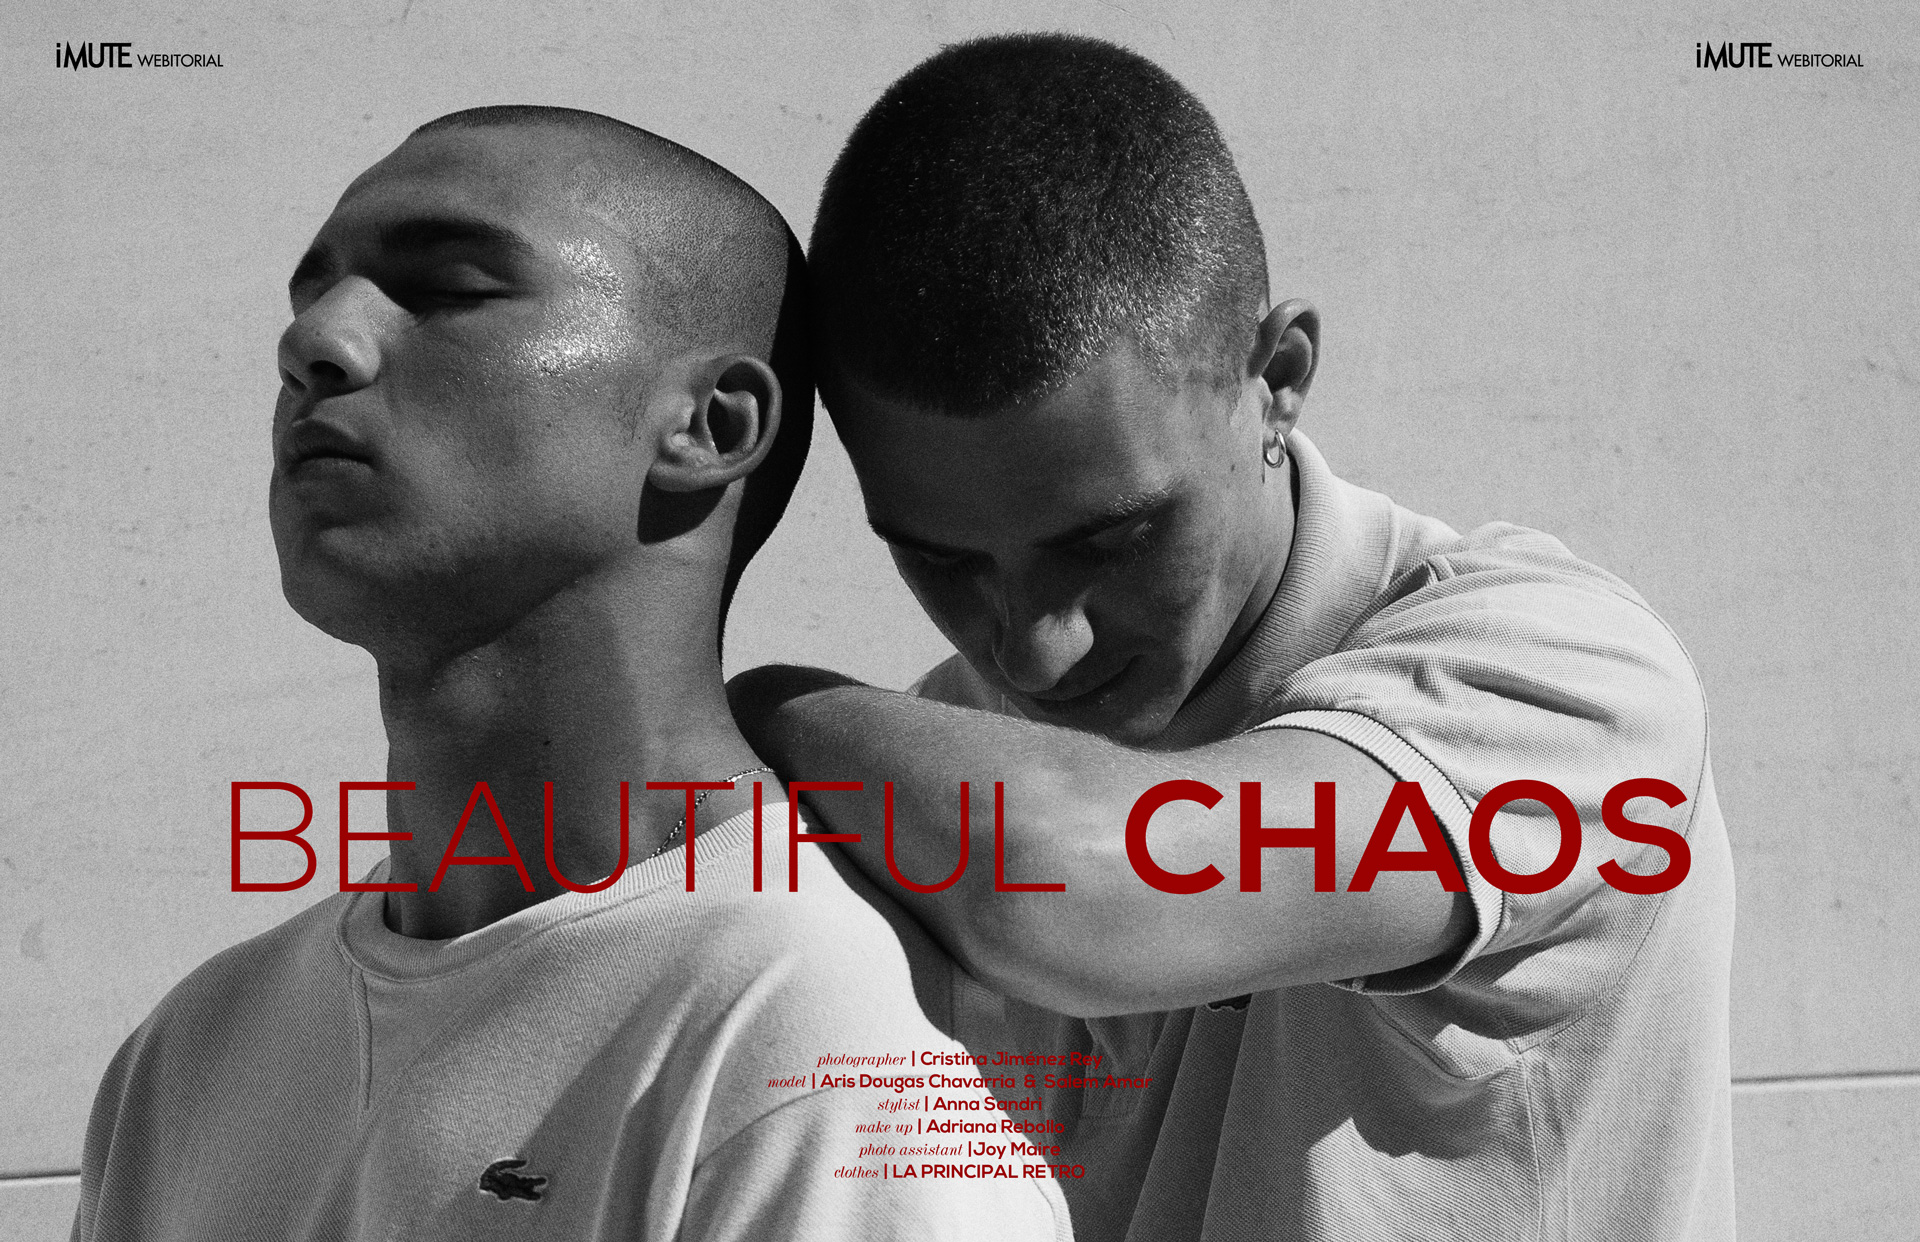 Beautiful chaos webitorial for iMute Magazine Photographer | Cristina Jiménez Rey Models | Aris Dougas Chavarria & Salem Amar Stylist | Anna Sandri Makeup & Hair | Adriana Rebollo Photo Assistant | Joy Maire Clothes | LA PRINCIPAL RETRO